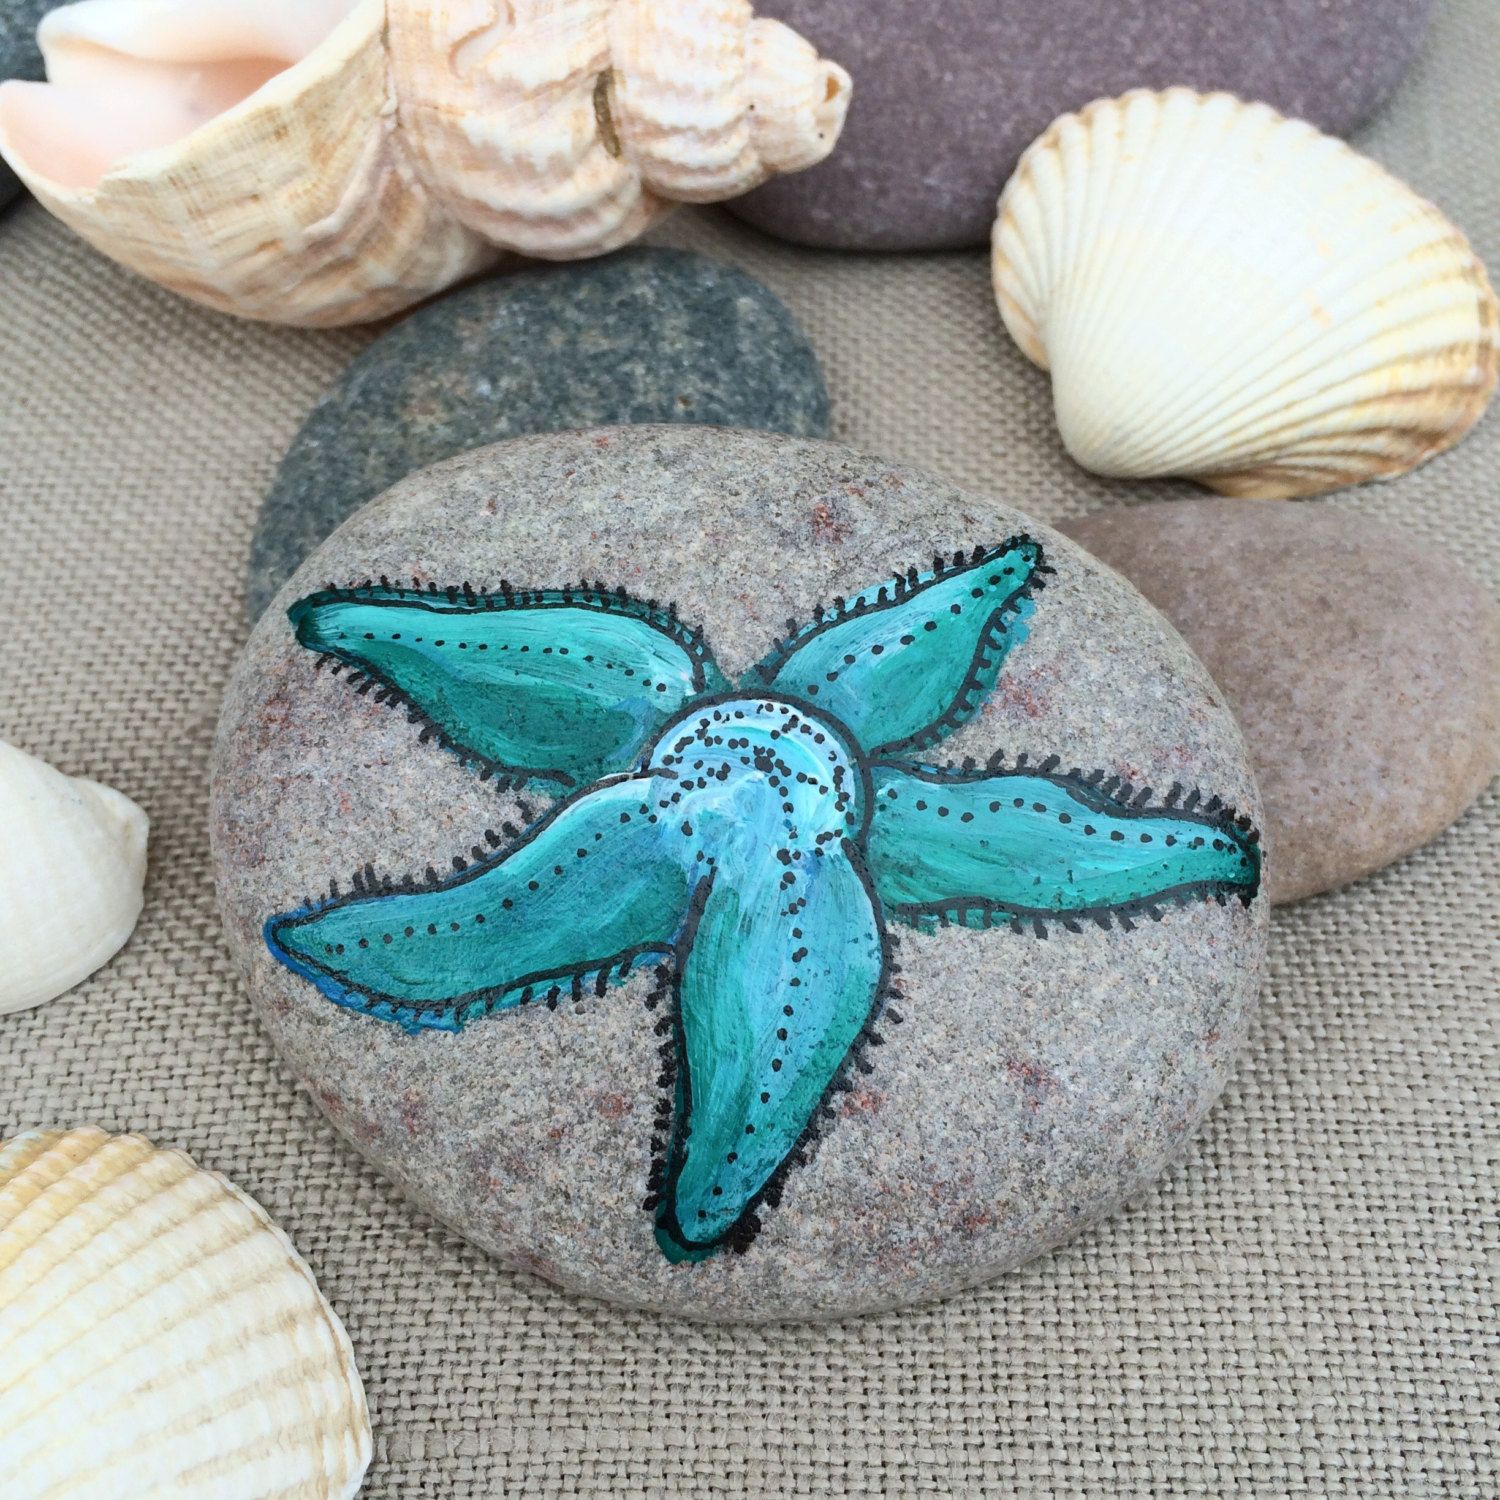 Painted Rock   Pebble Art   Bathroom Decor   Stone Art   Starfish  Paperweight   Desk